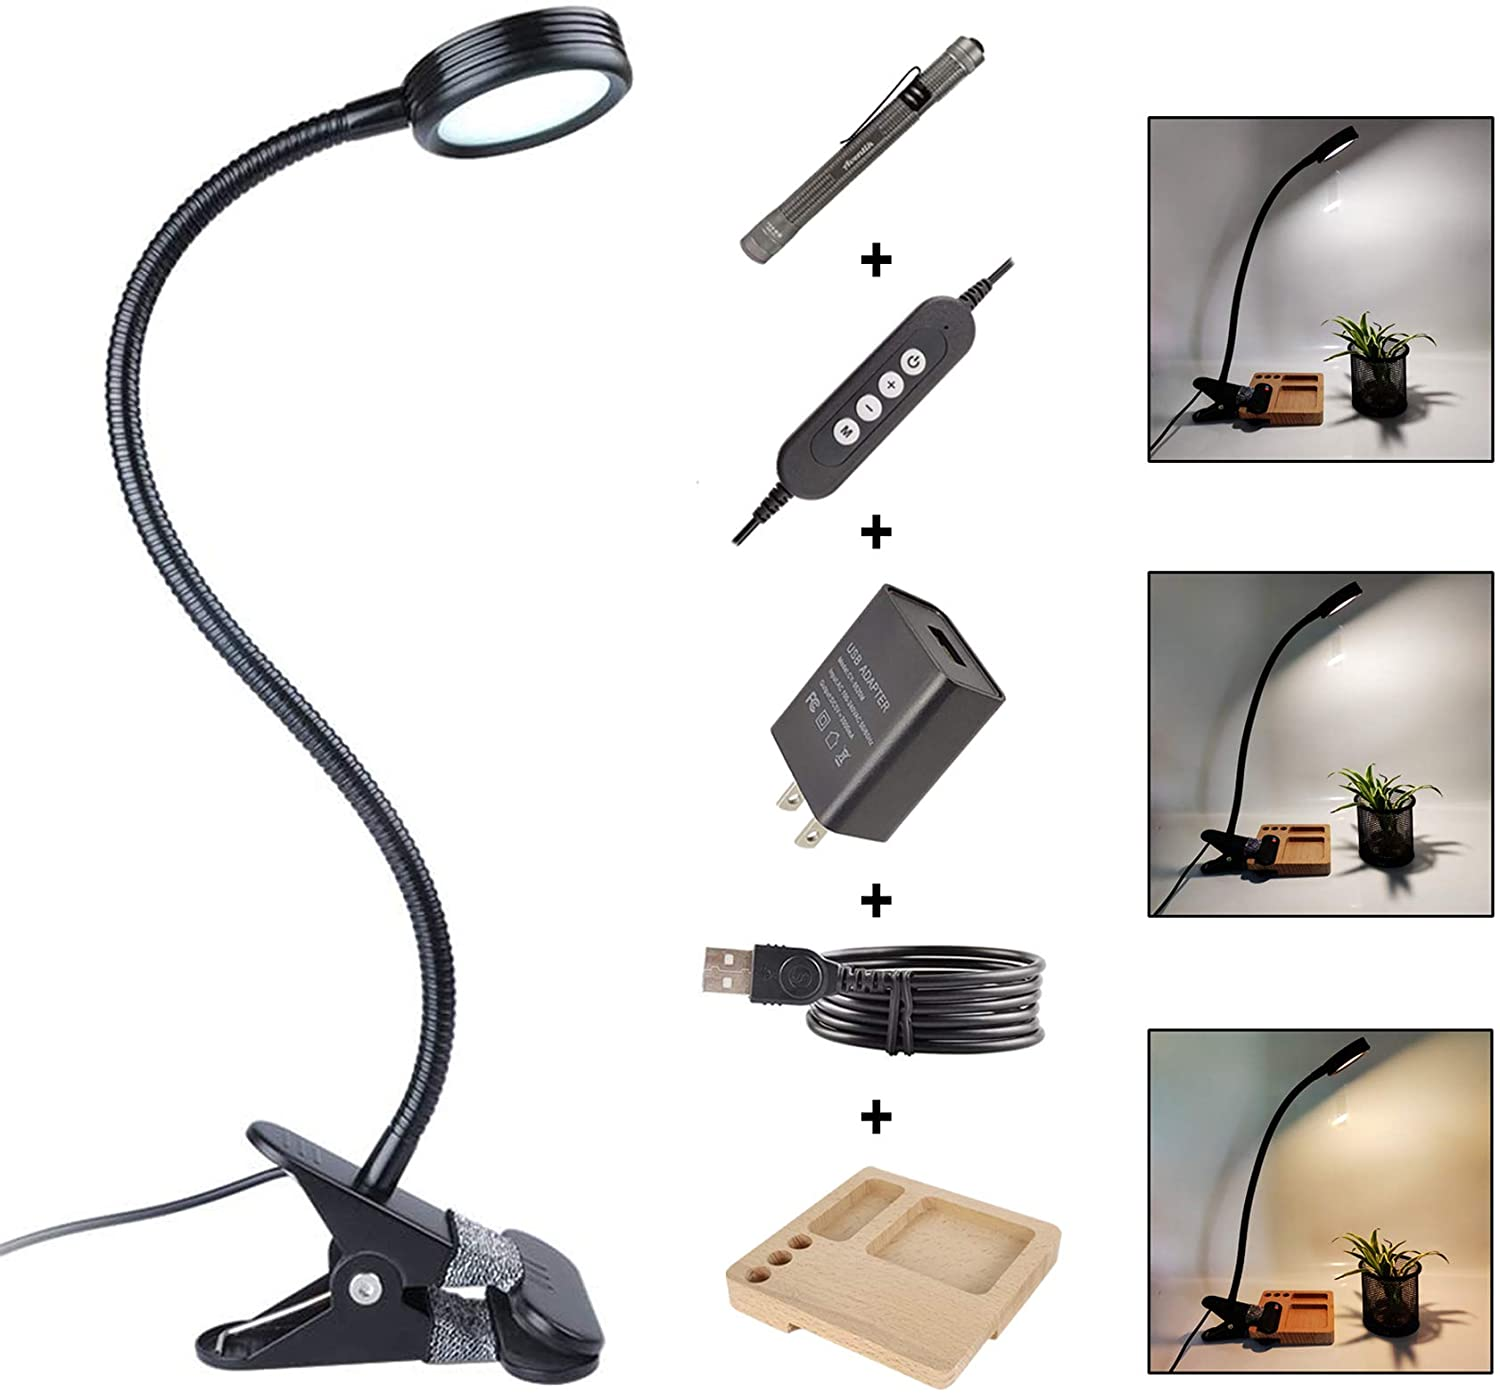 Edison Design 5W LED Clip on Light/Reading Light/Bed Light with 3W Flashlight, USB Desk Lamp with 3 Colors x 10-Level Brightness, Dimmable Reading Lamps for Desk, Mirror, Headboard, Computer (A)